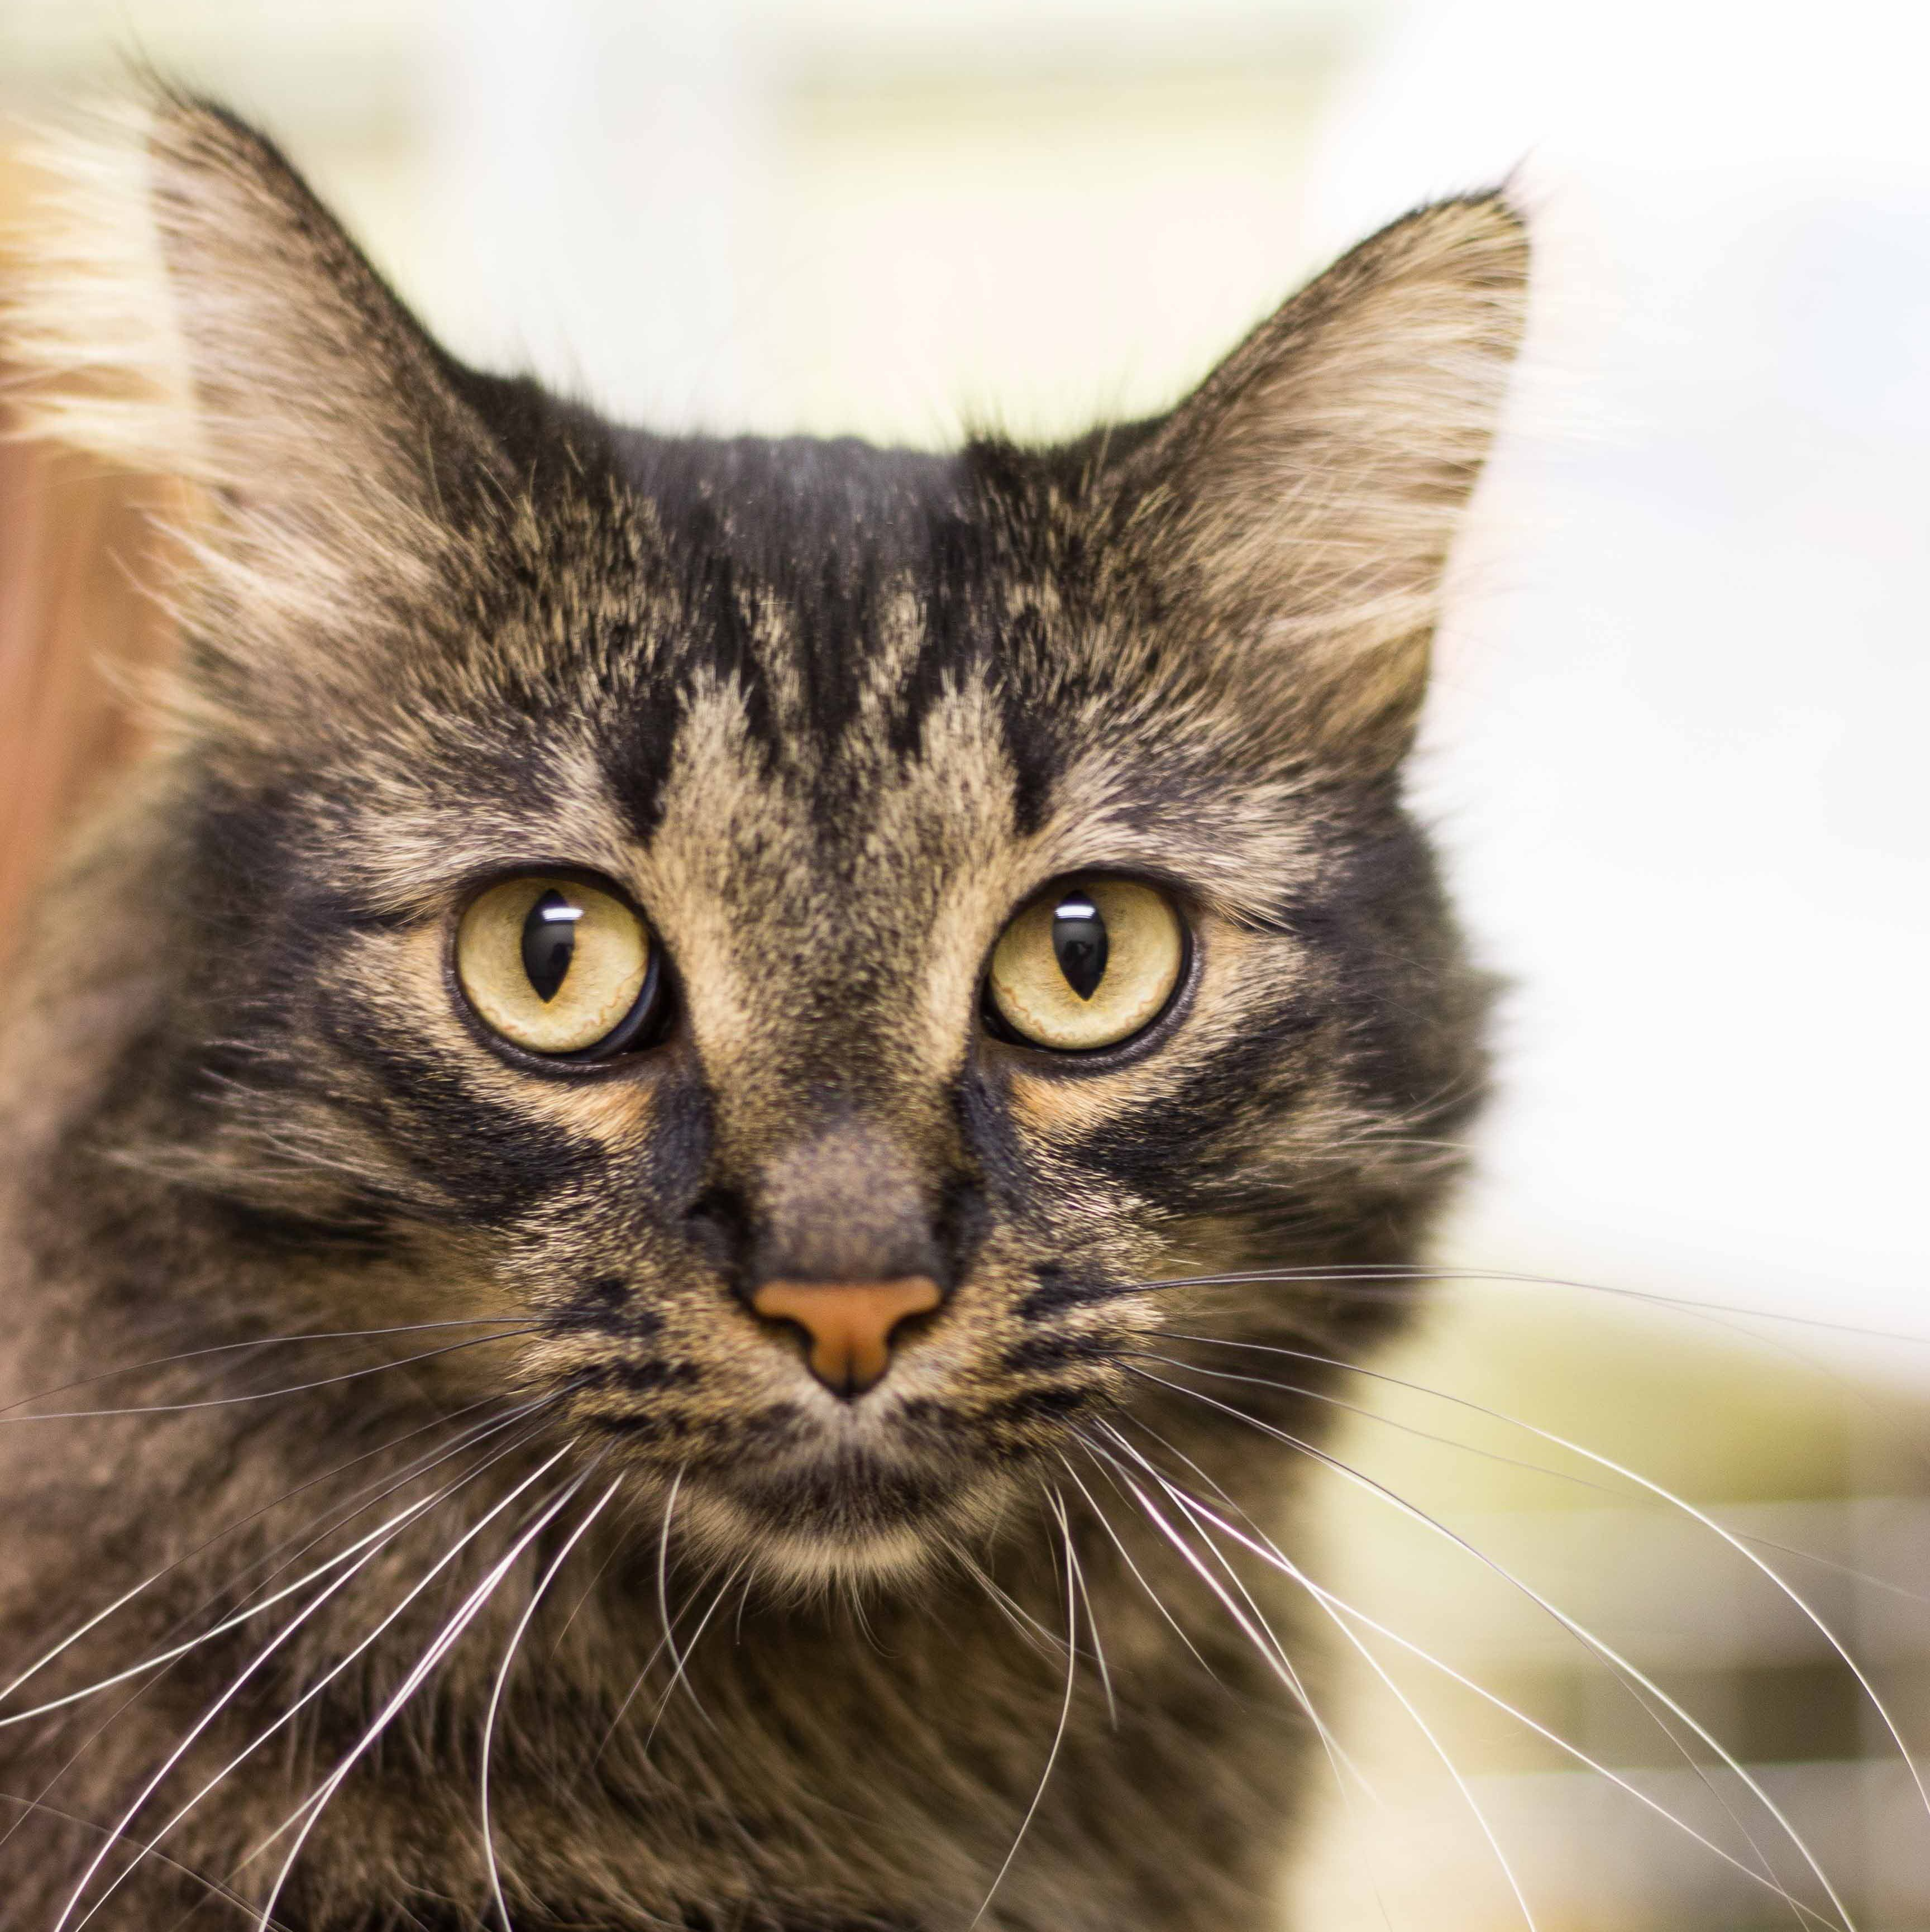 Meet Stewie He Is A Calmer Guy And Would Love To Find A Forever Family Cat Adoption Cat Rescue Cat Safe Plants